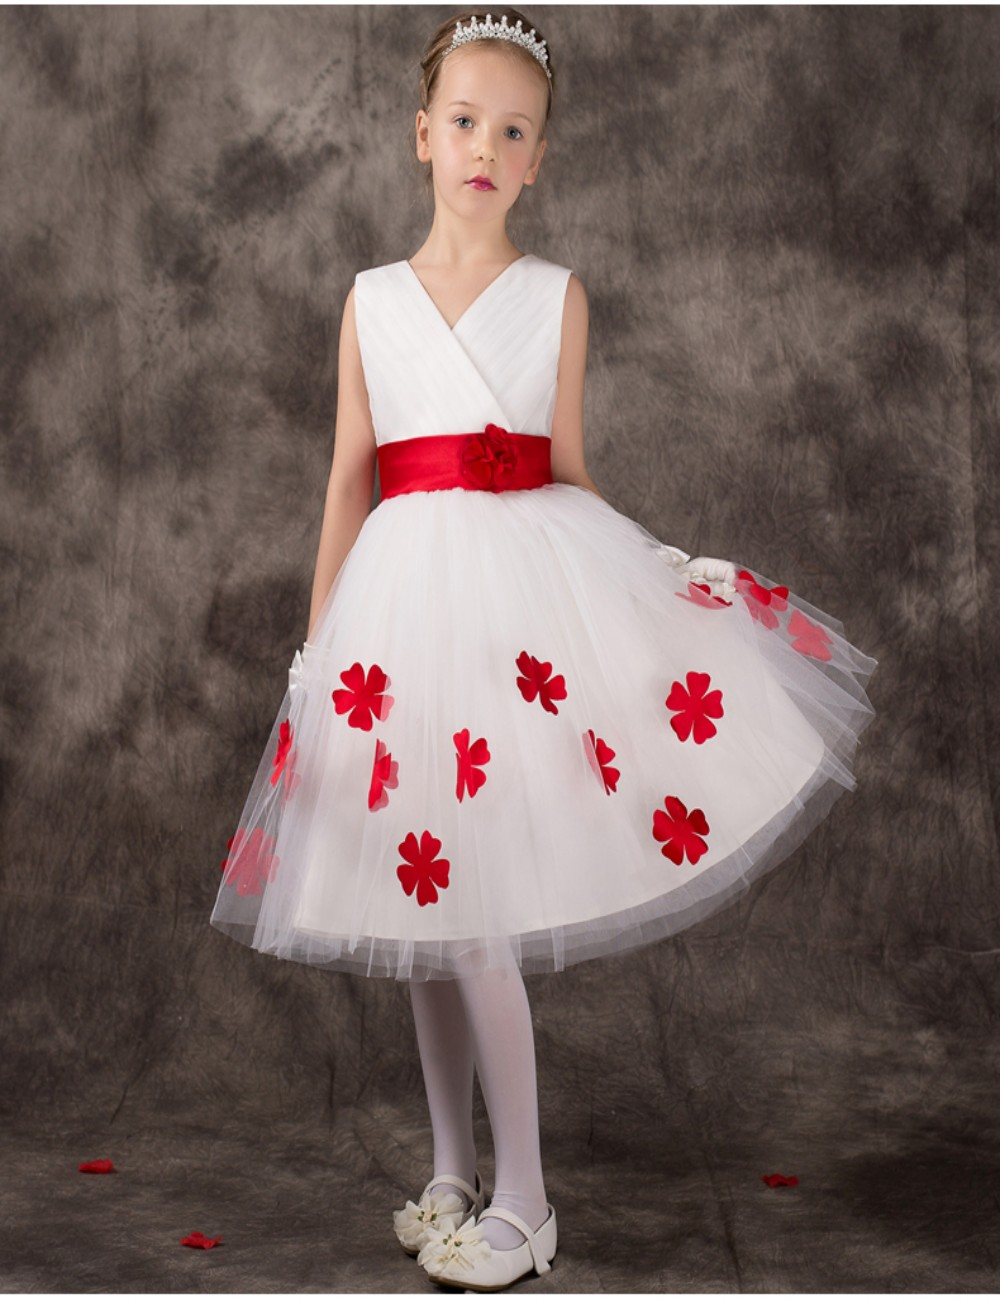 Red and white toddler flower girl dresses wedding dresses in jax red and white toddler flower girl dresses 69 izmirmasajfo